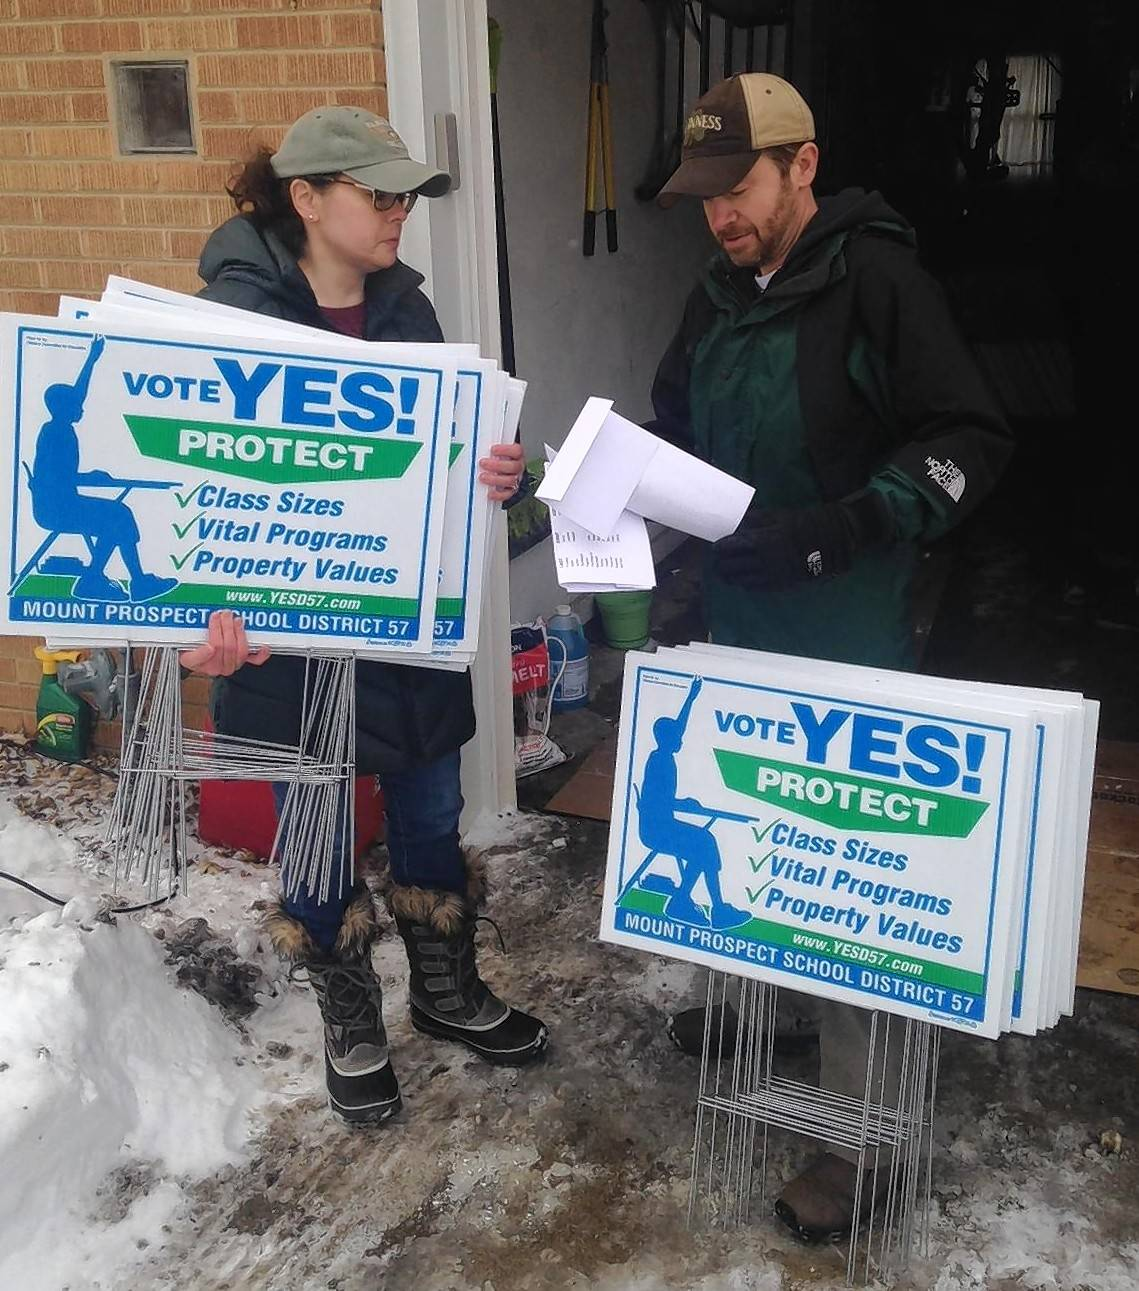 Nancy and George Vincent pick up 30 yard signs to deliver to backers of the Mount Prospect Elementary District 57 tax increase.